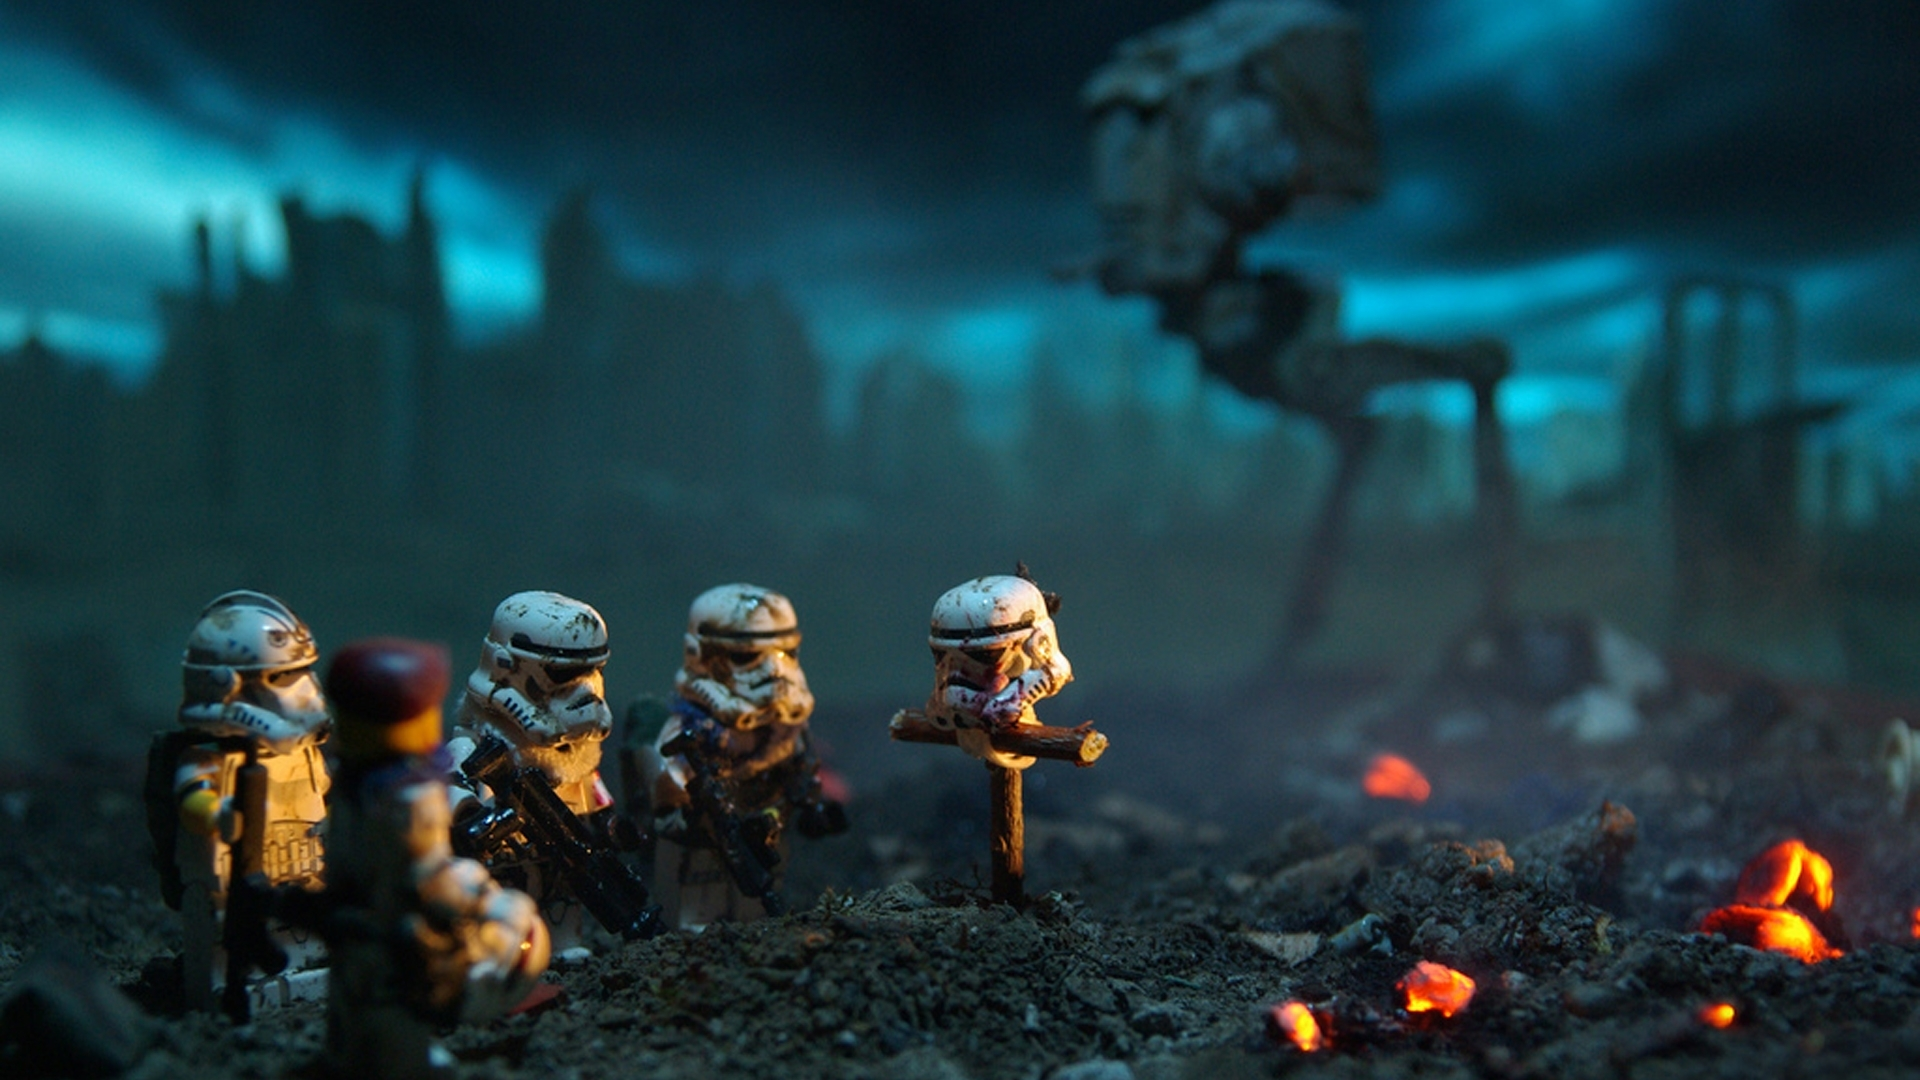 lego star wars stormtroopers wallpapers | hd wallpapers | id #11678